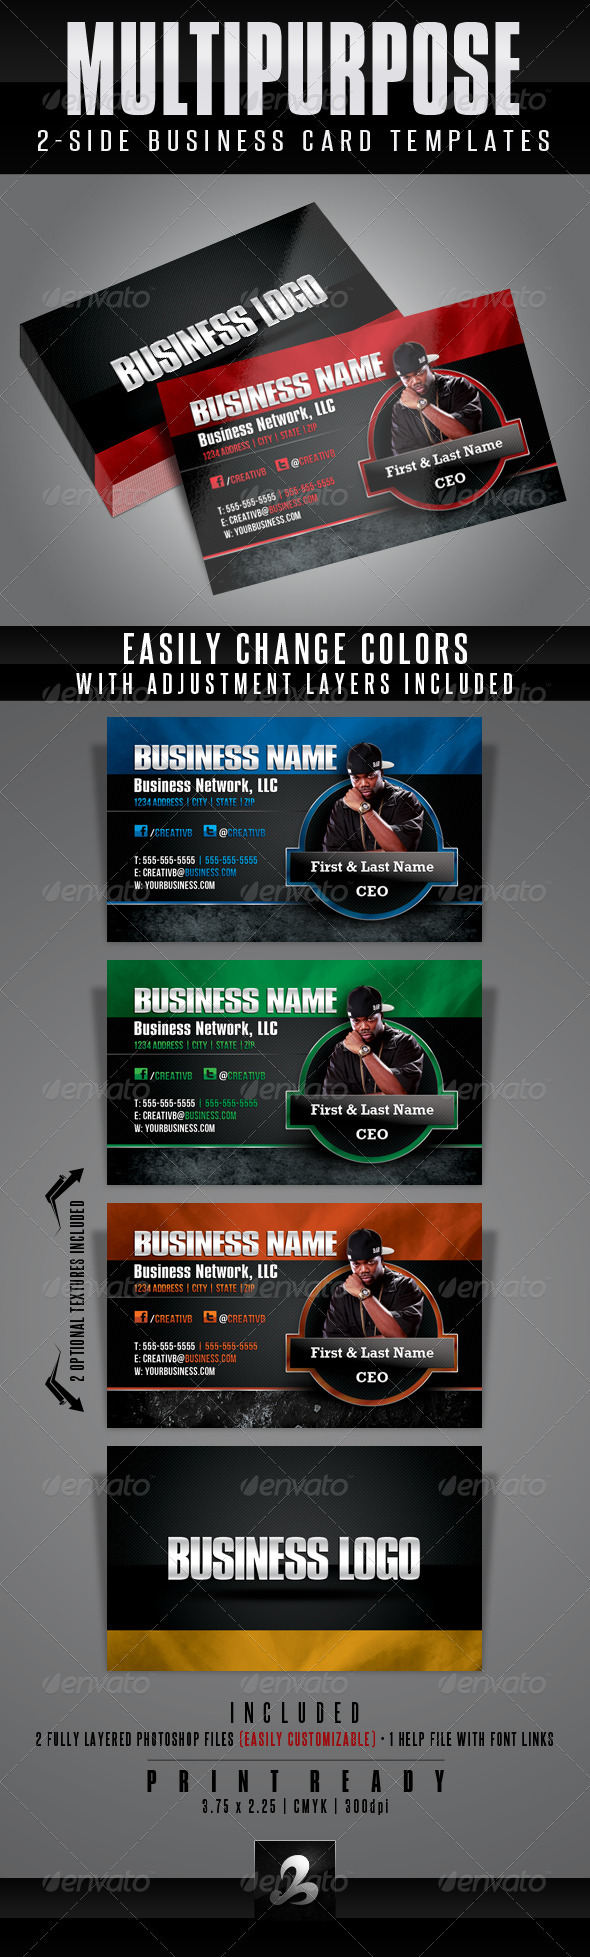 Multipurpose Business Card Templates 1 - Corporate Business Cards